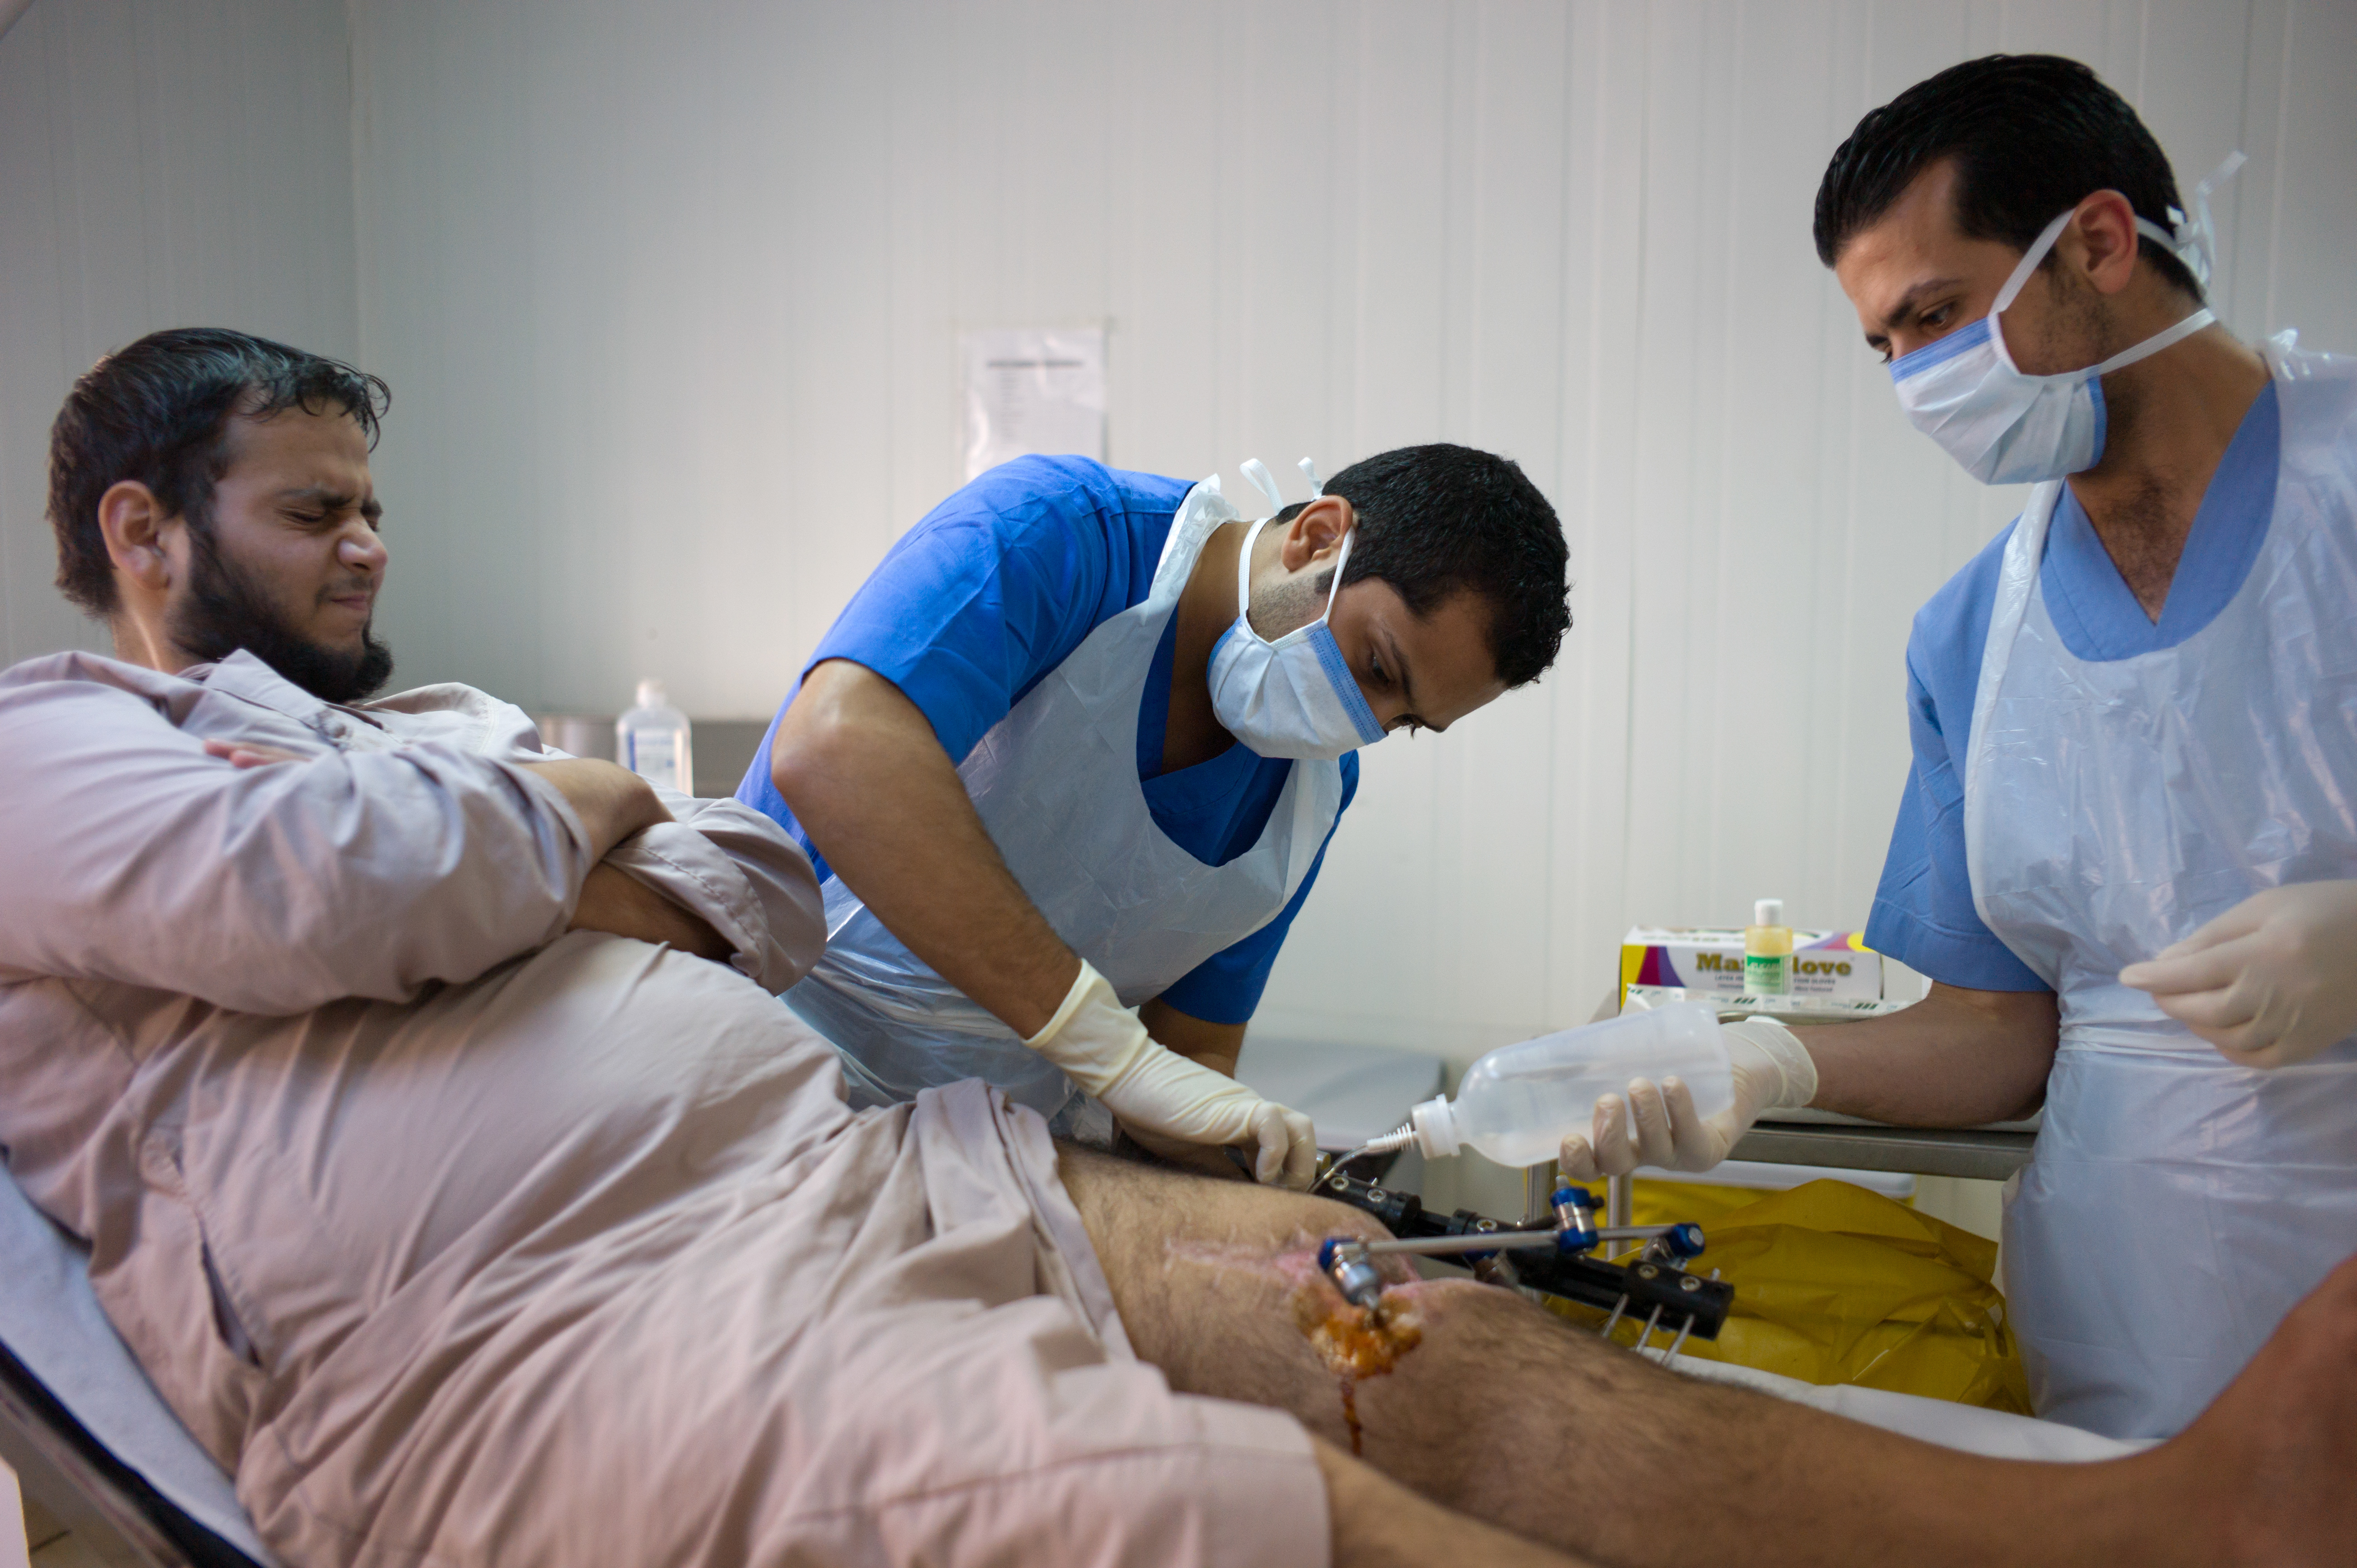 A Syrian refugee is treated by Doctors Without Borders' staff